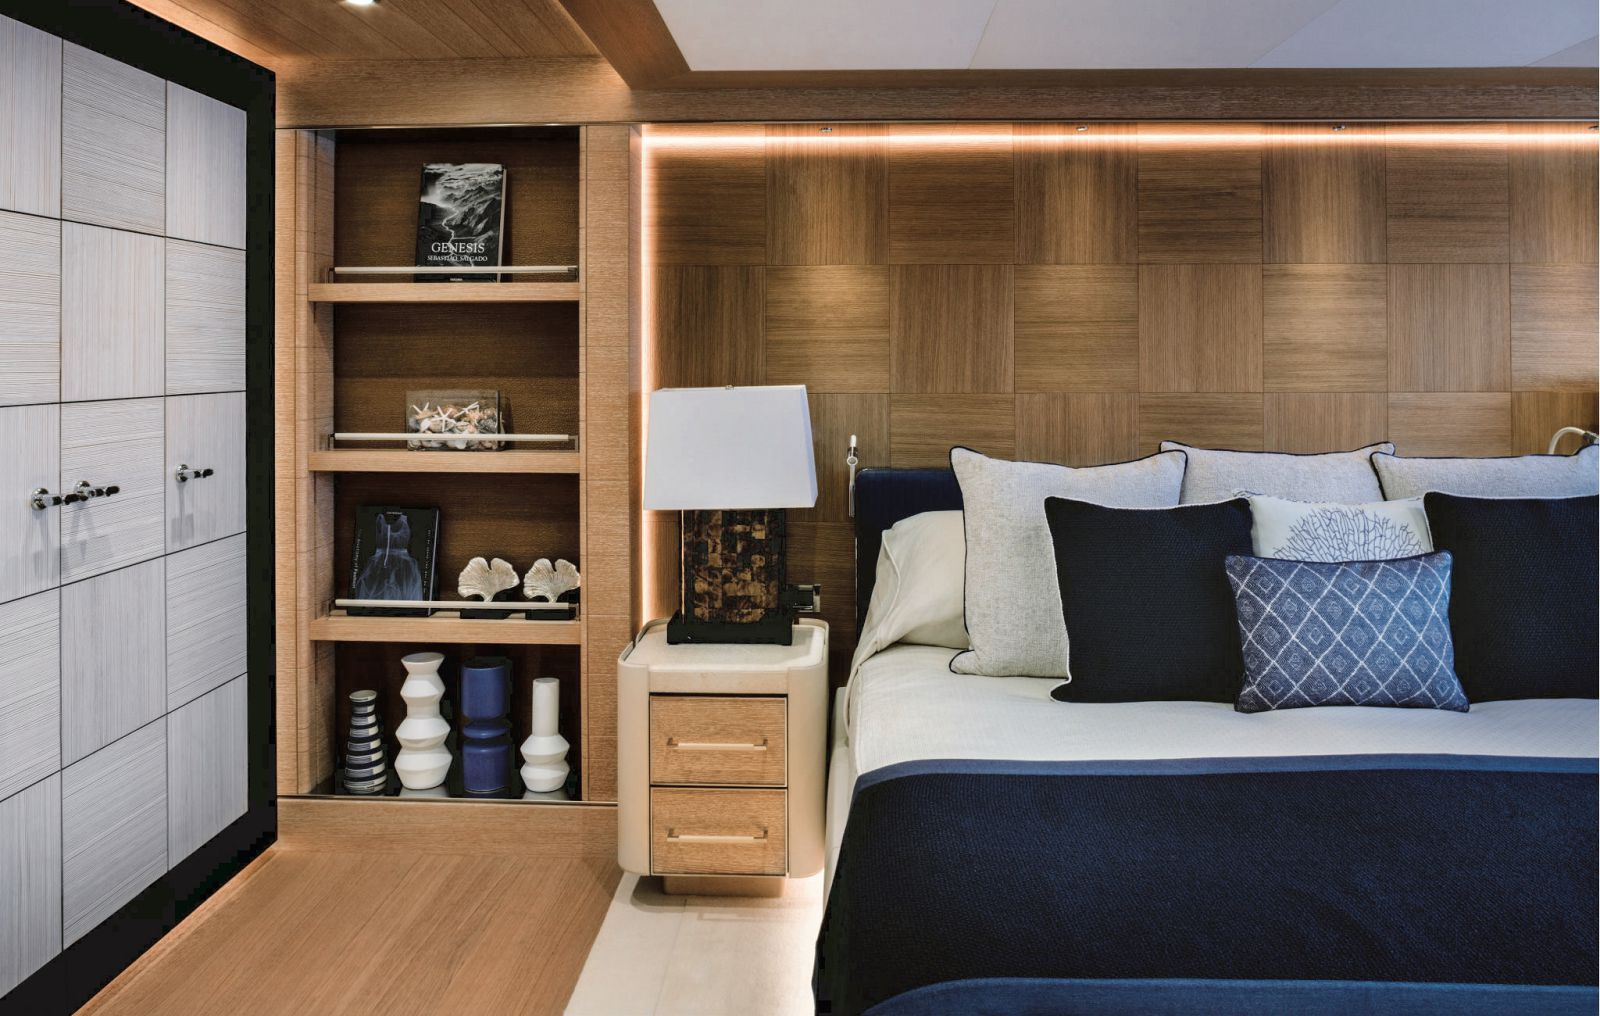 Cabin bed, side table, book shelf and closet. >